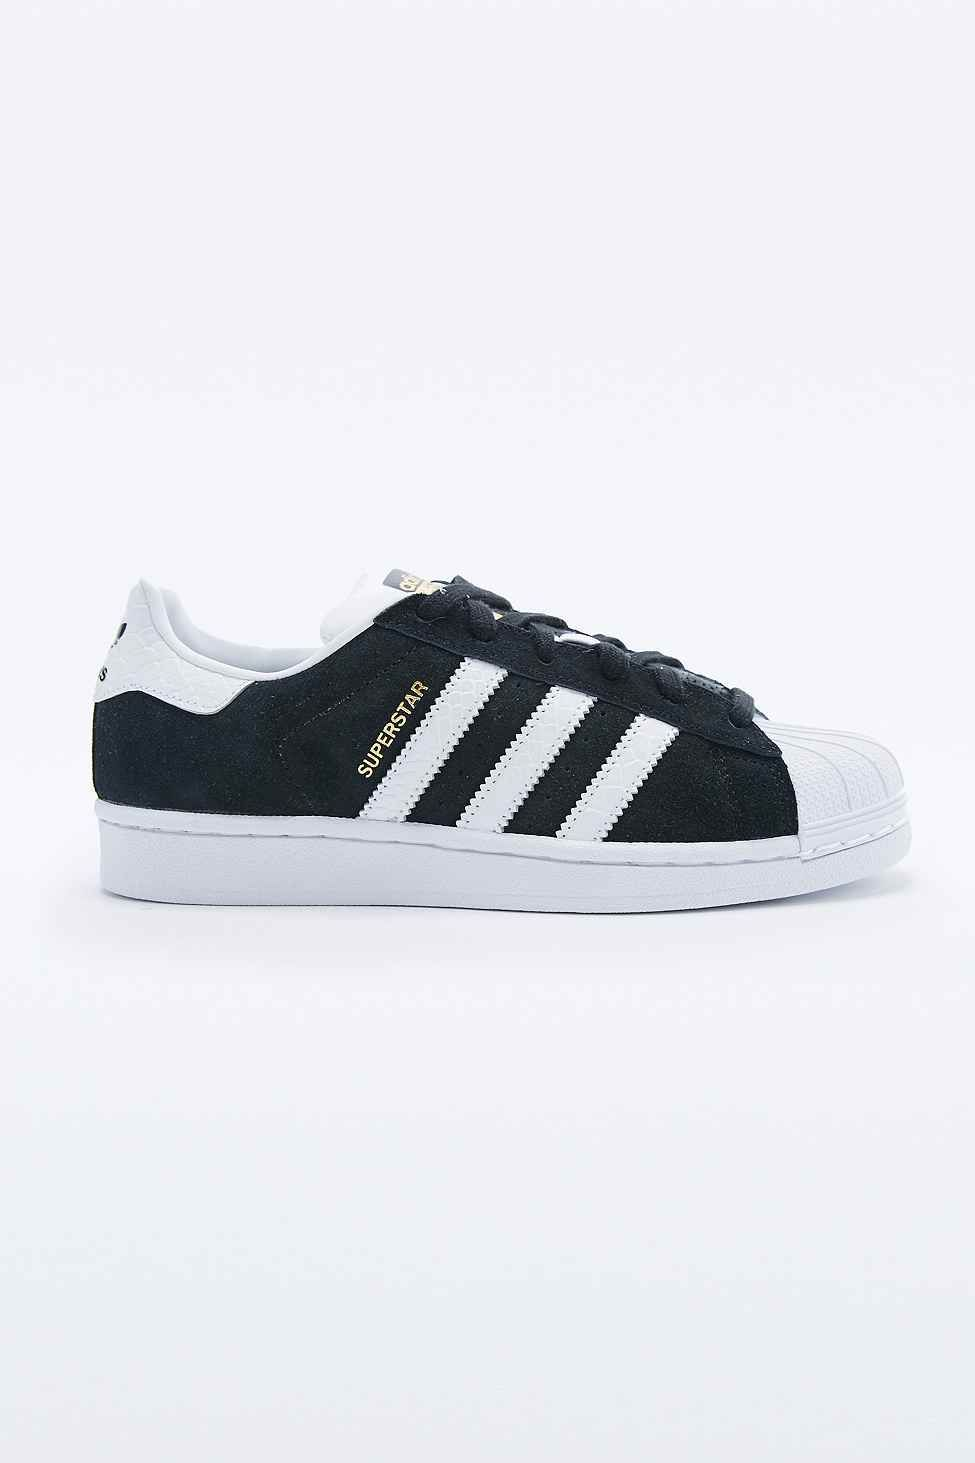 302027ac868 adidas Originals Superstar Trainers in Black and White